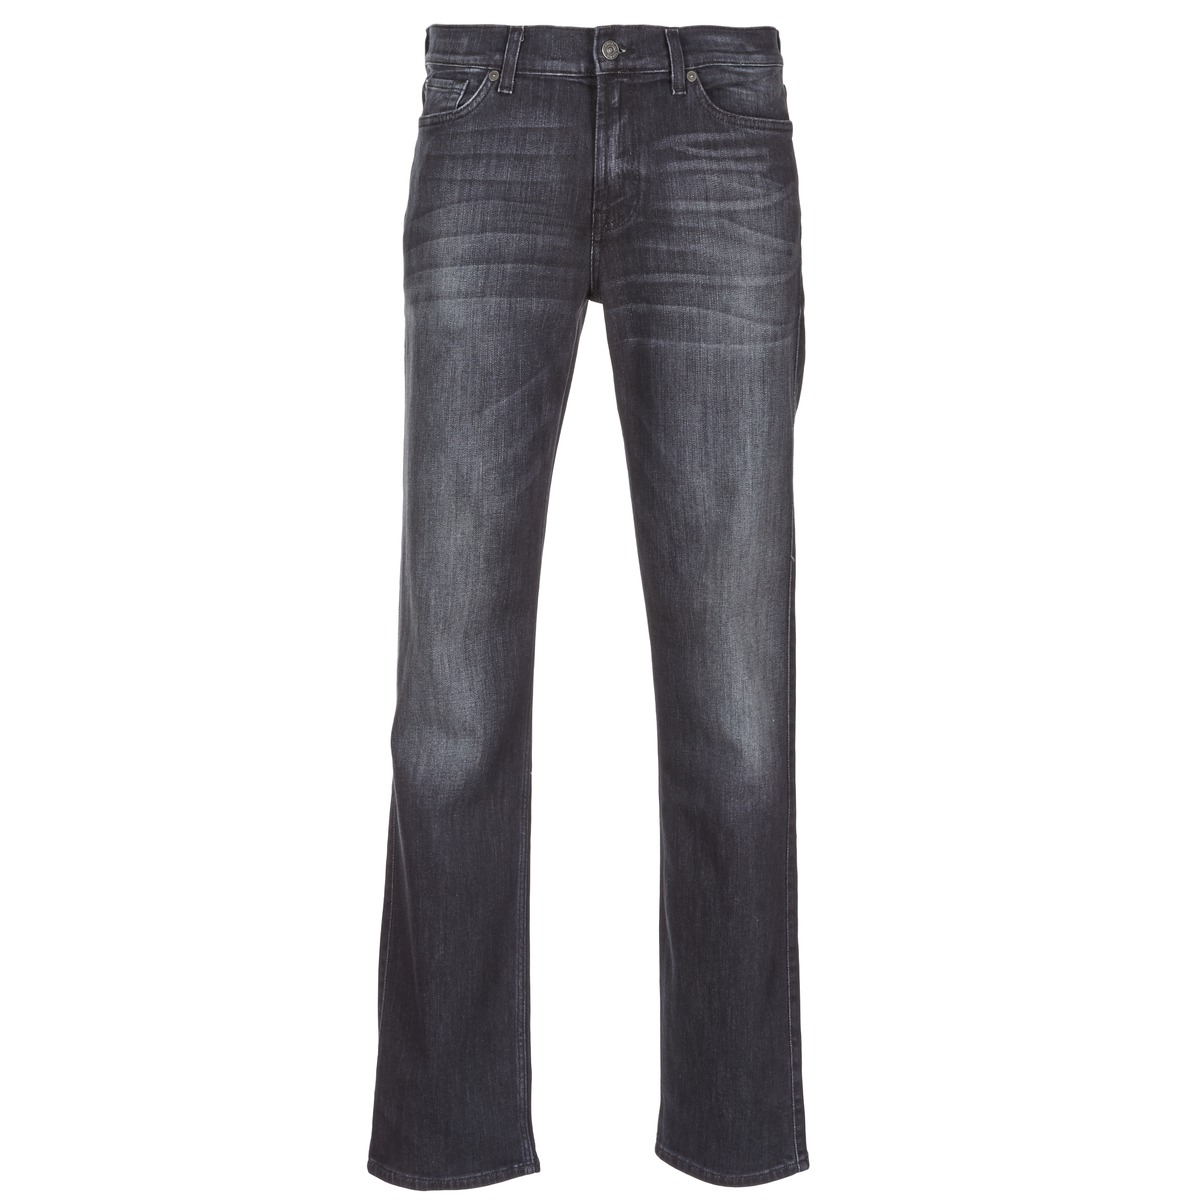 7 for all Mankind SLIMMY LUXE PERFORMANCE Grey